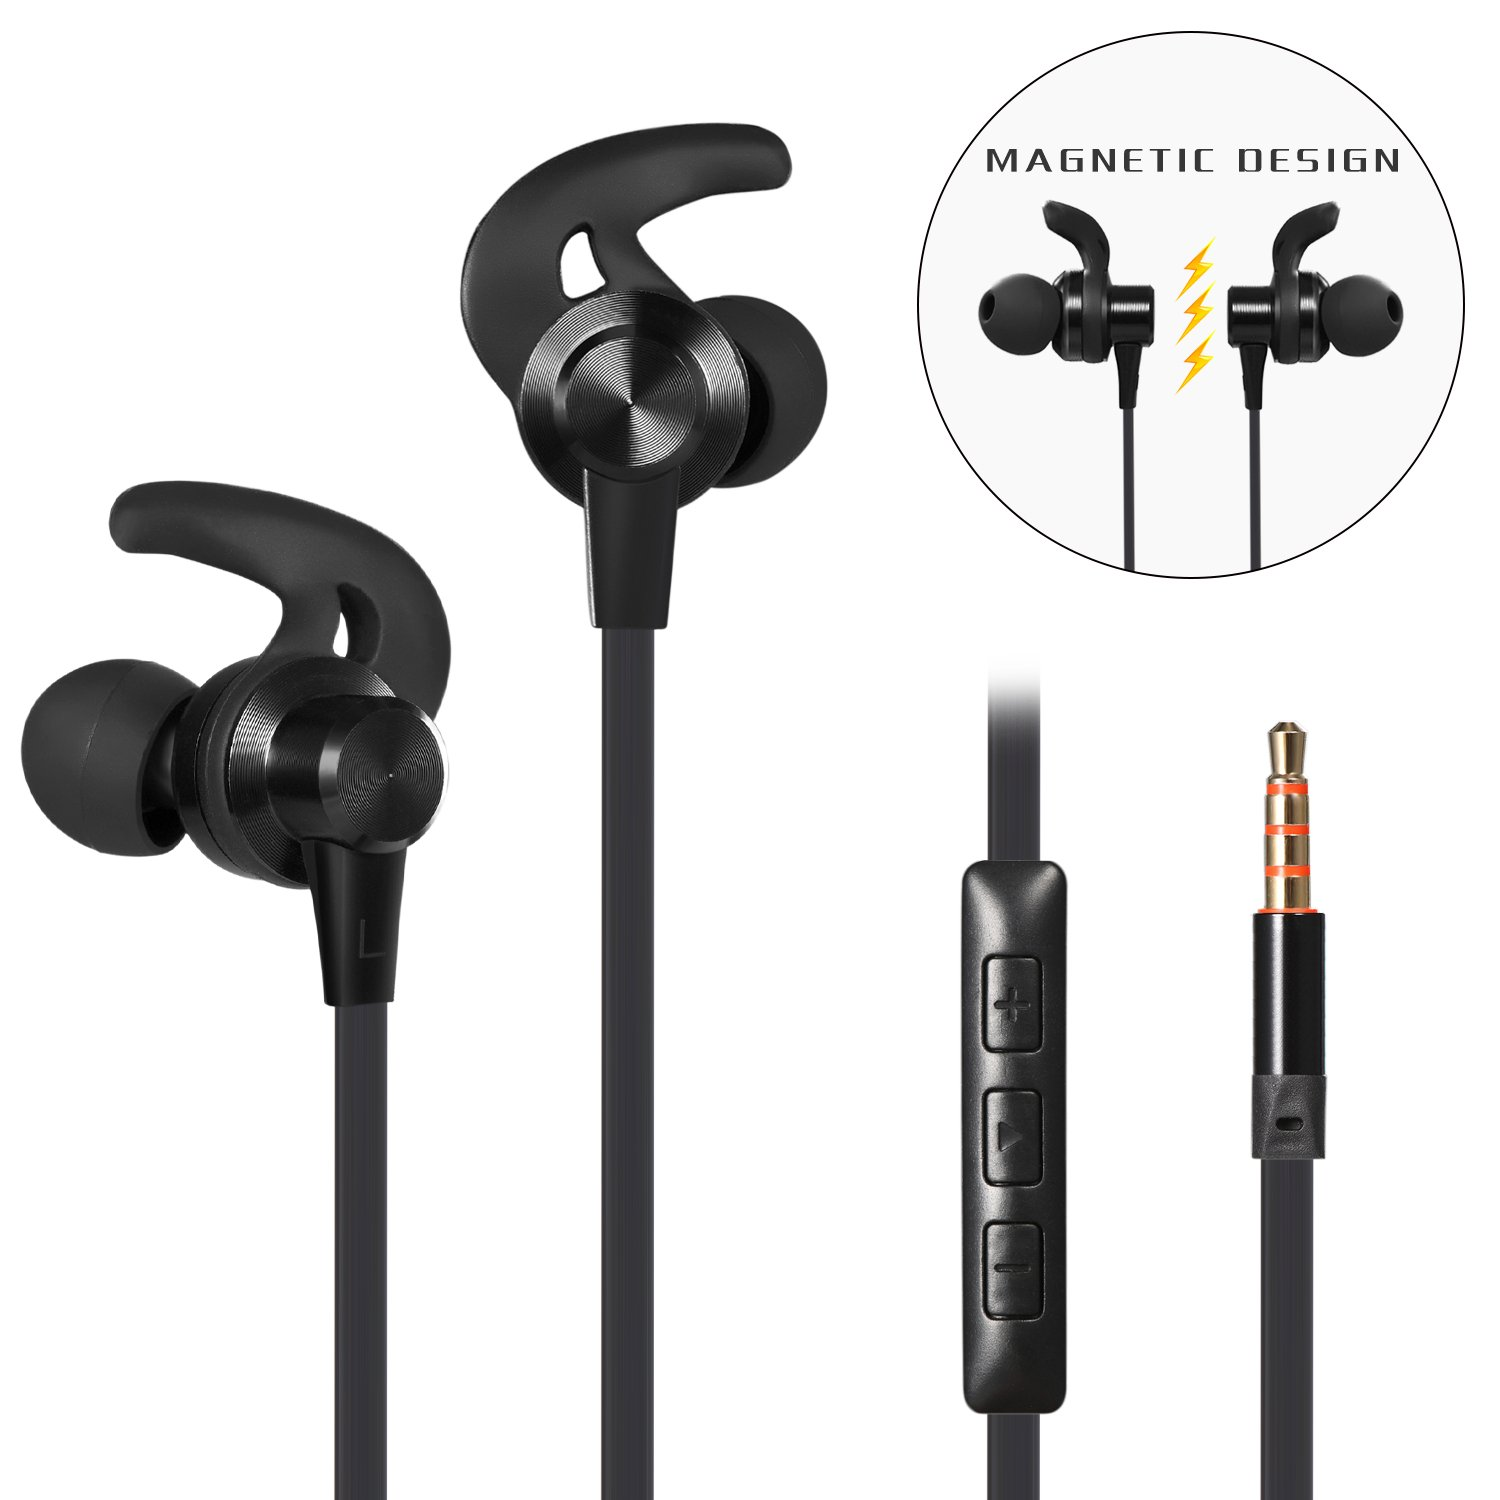 In-Ear Earbuds, Magnetic Wired Earphones with Mic and Volume Control, AnlysoMetal Stereo Bass Noise Cancelling Headphones Sports Sweatproof Headsets for Gym Running Workout Android Samsung (Black)